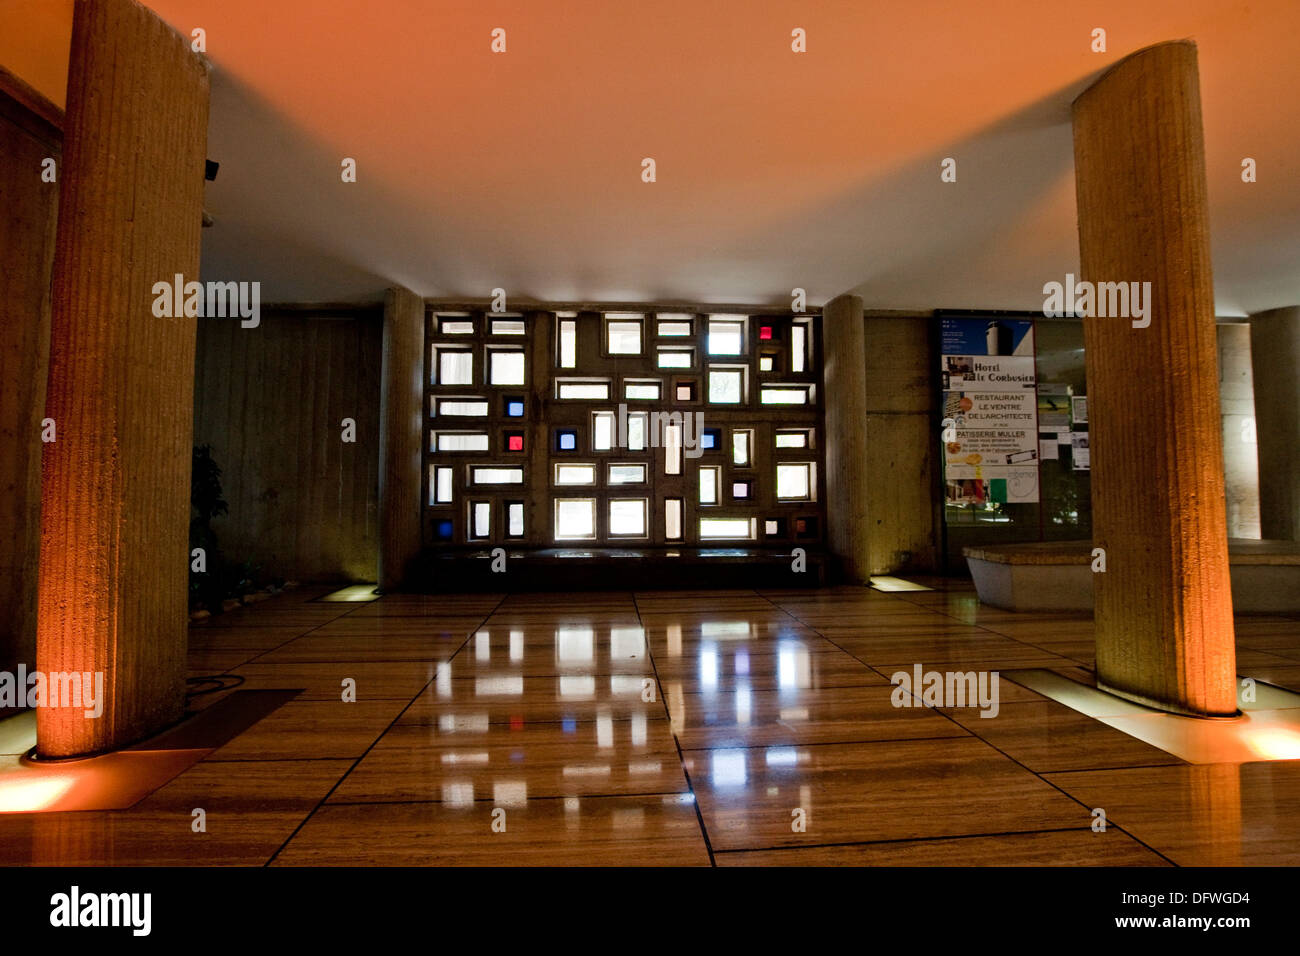 Reception area of modernist residential housing The Unité d'Habitation designed  by Le Corbusier, with - Stock Image